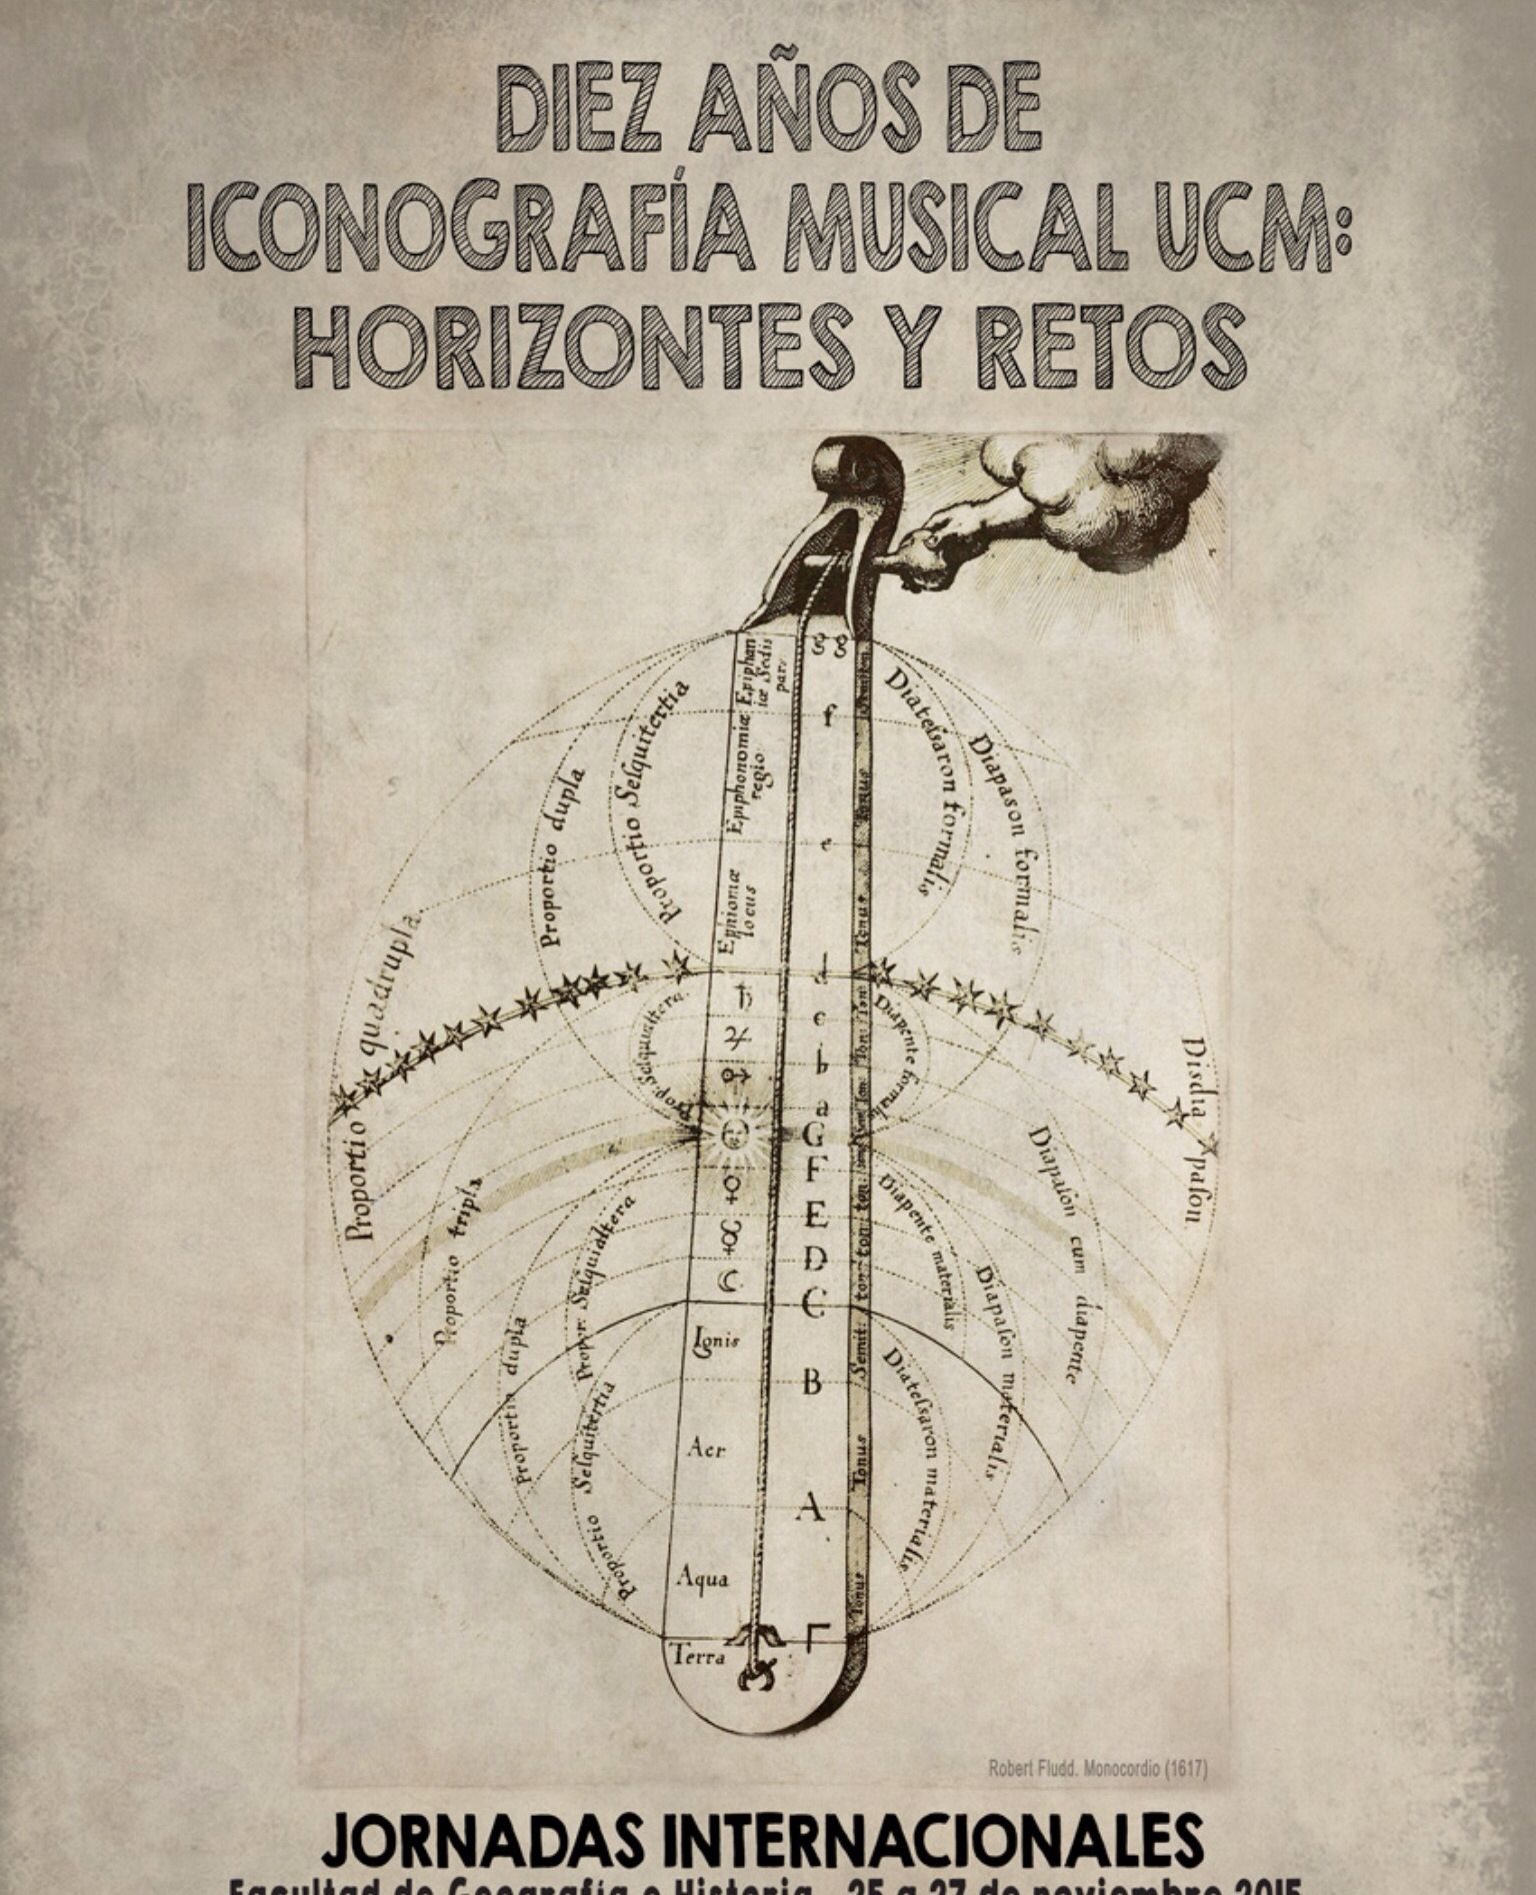 Curso Iconografia Musical